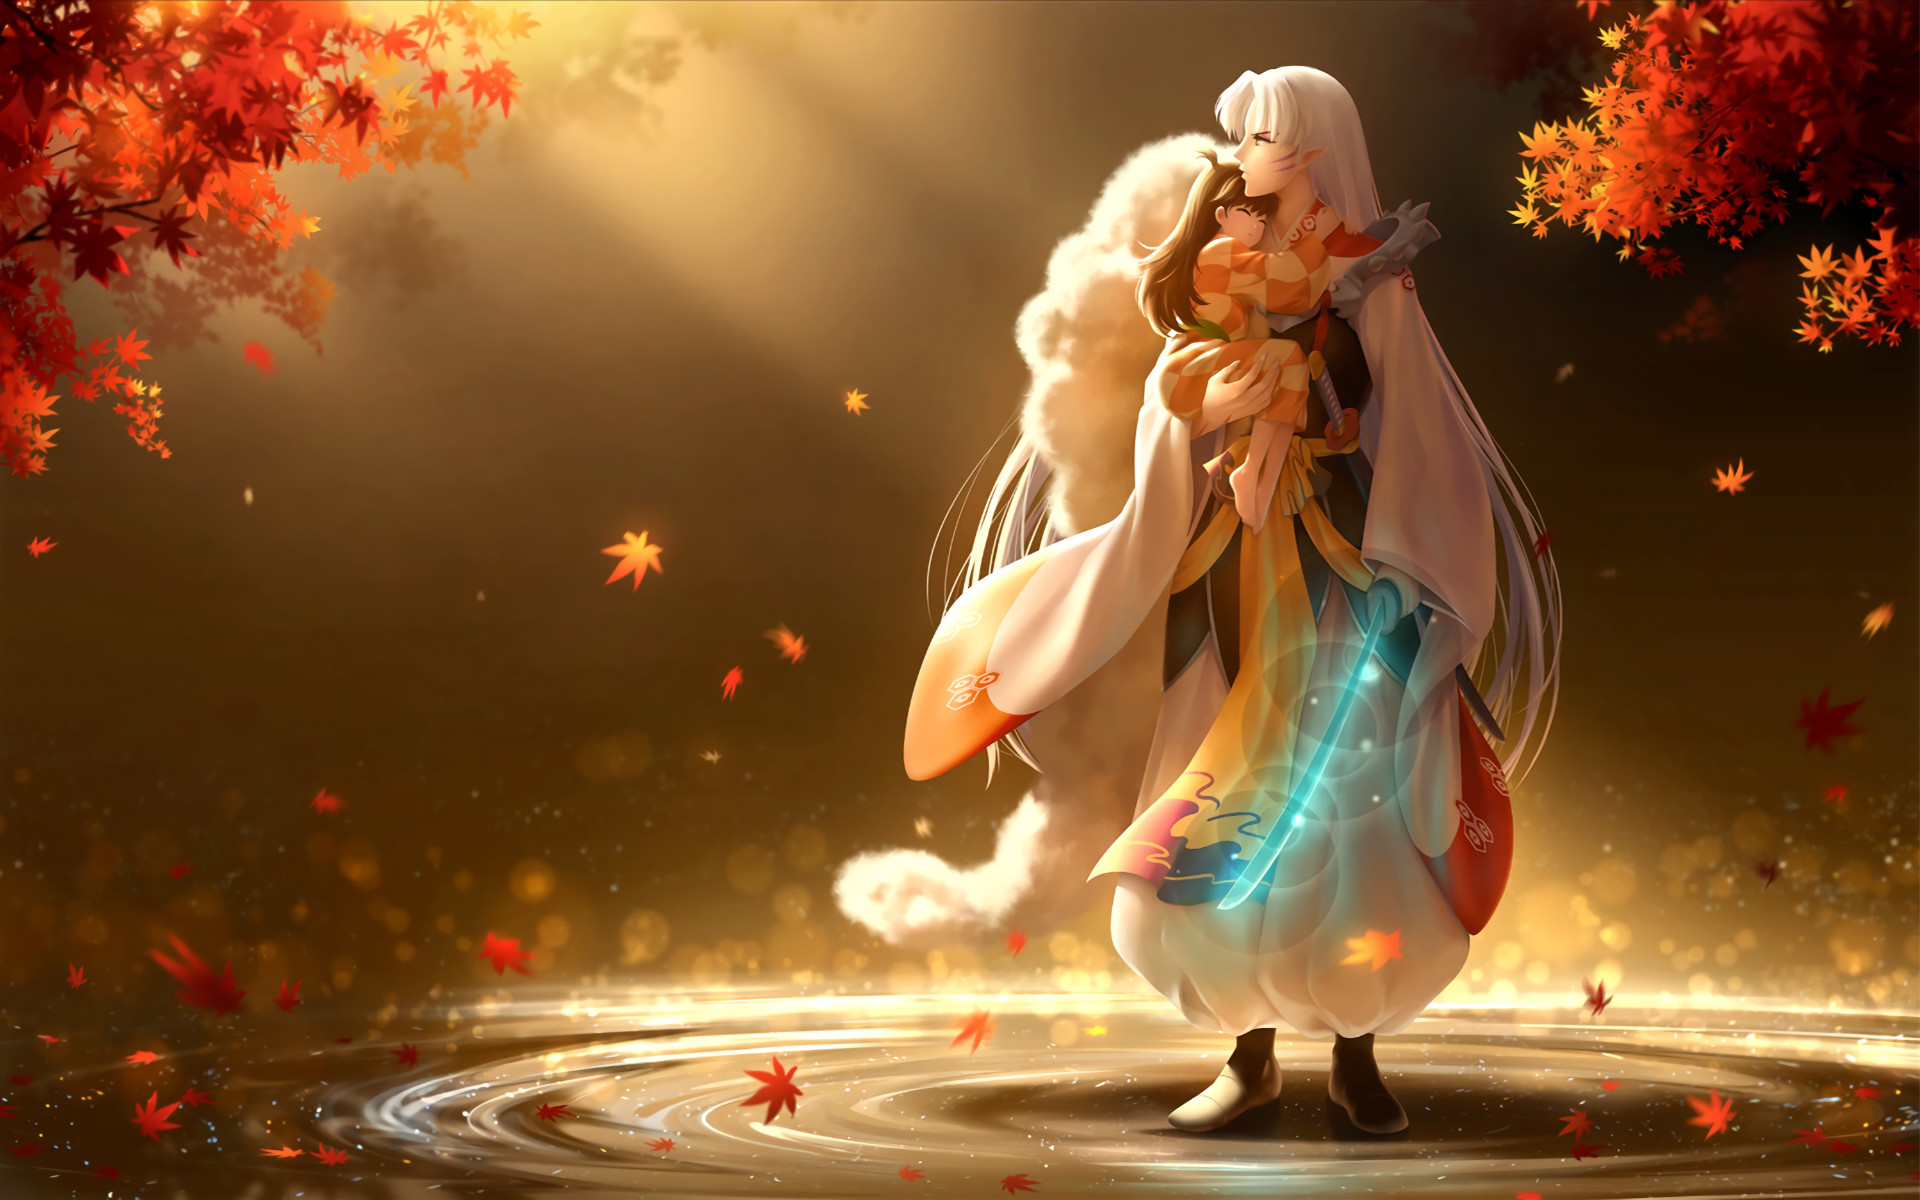 inuyasha hd wallpapers 68 images